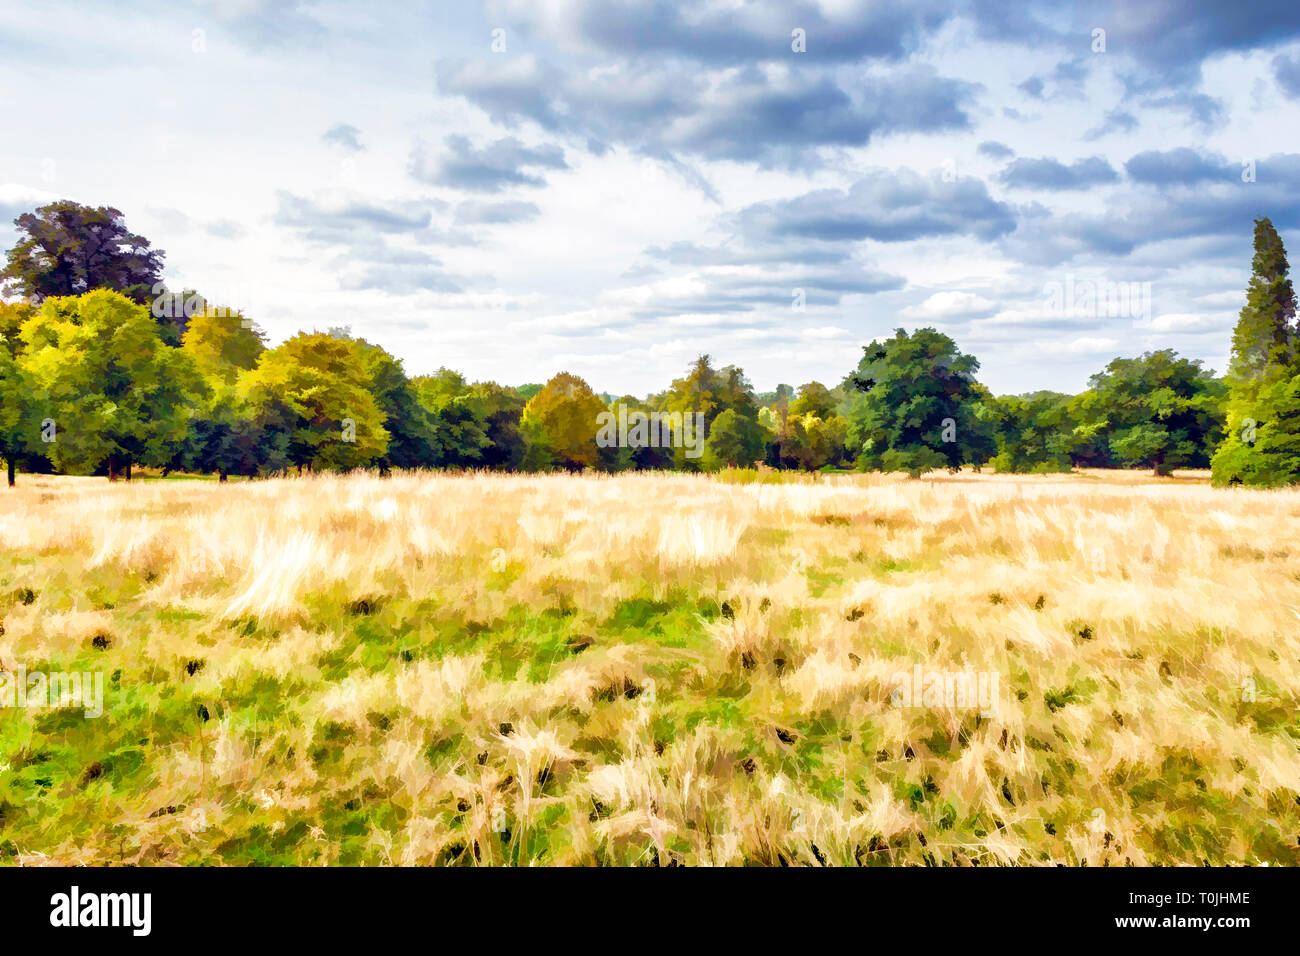 Painterly illustration of a yellow grassy meadow with trees and woodland in the background on a summer's day - Stock Image